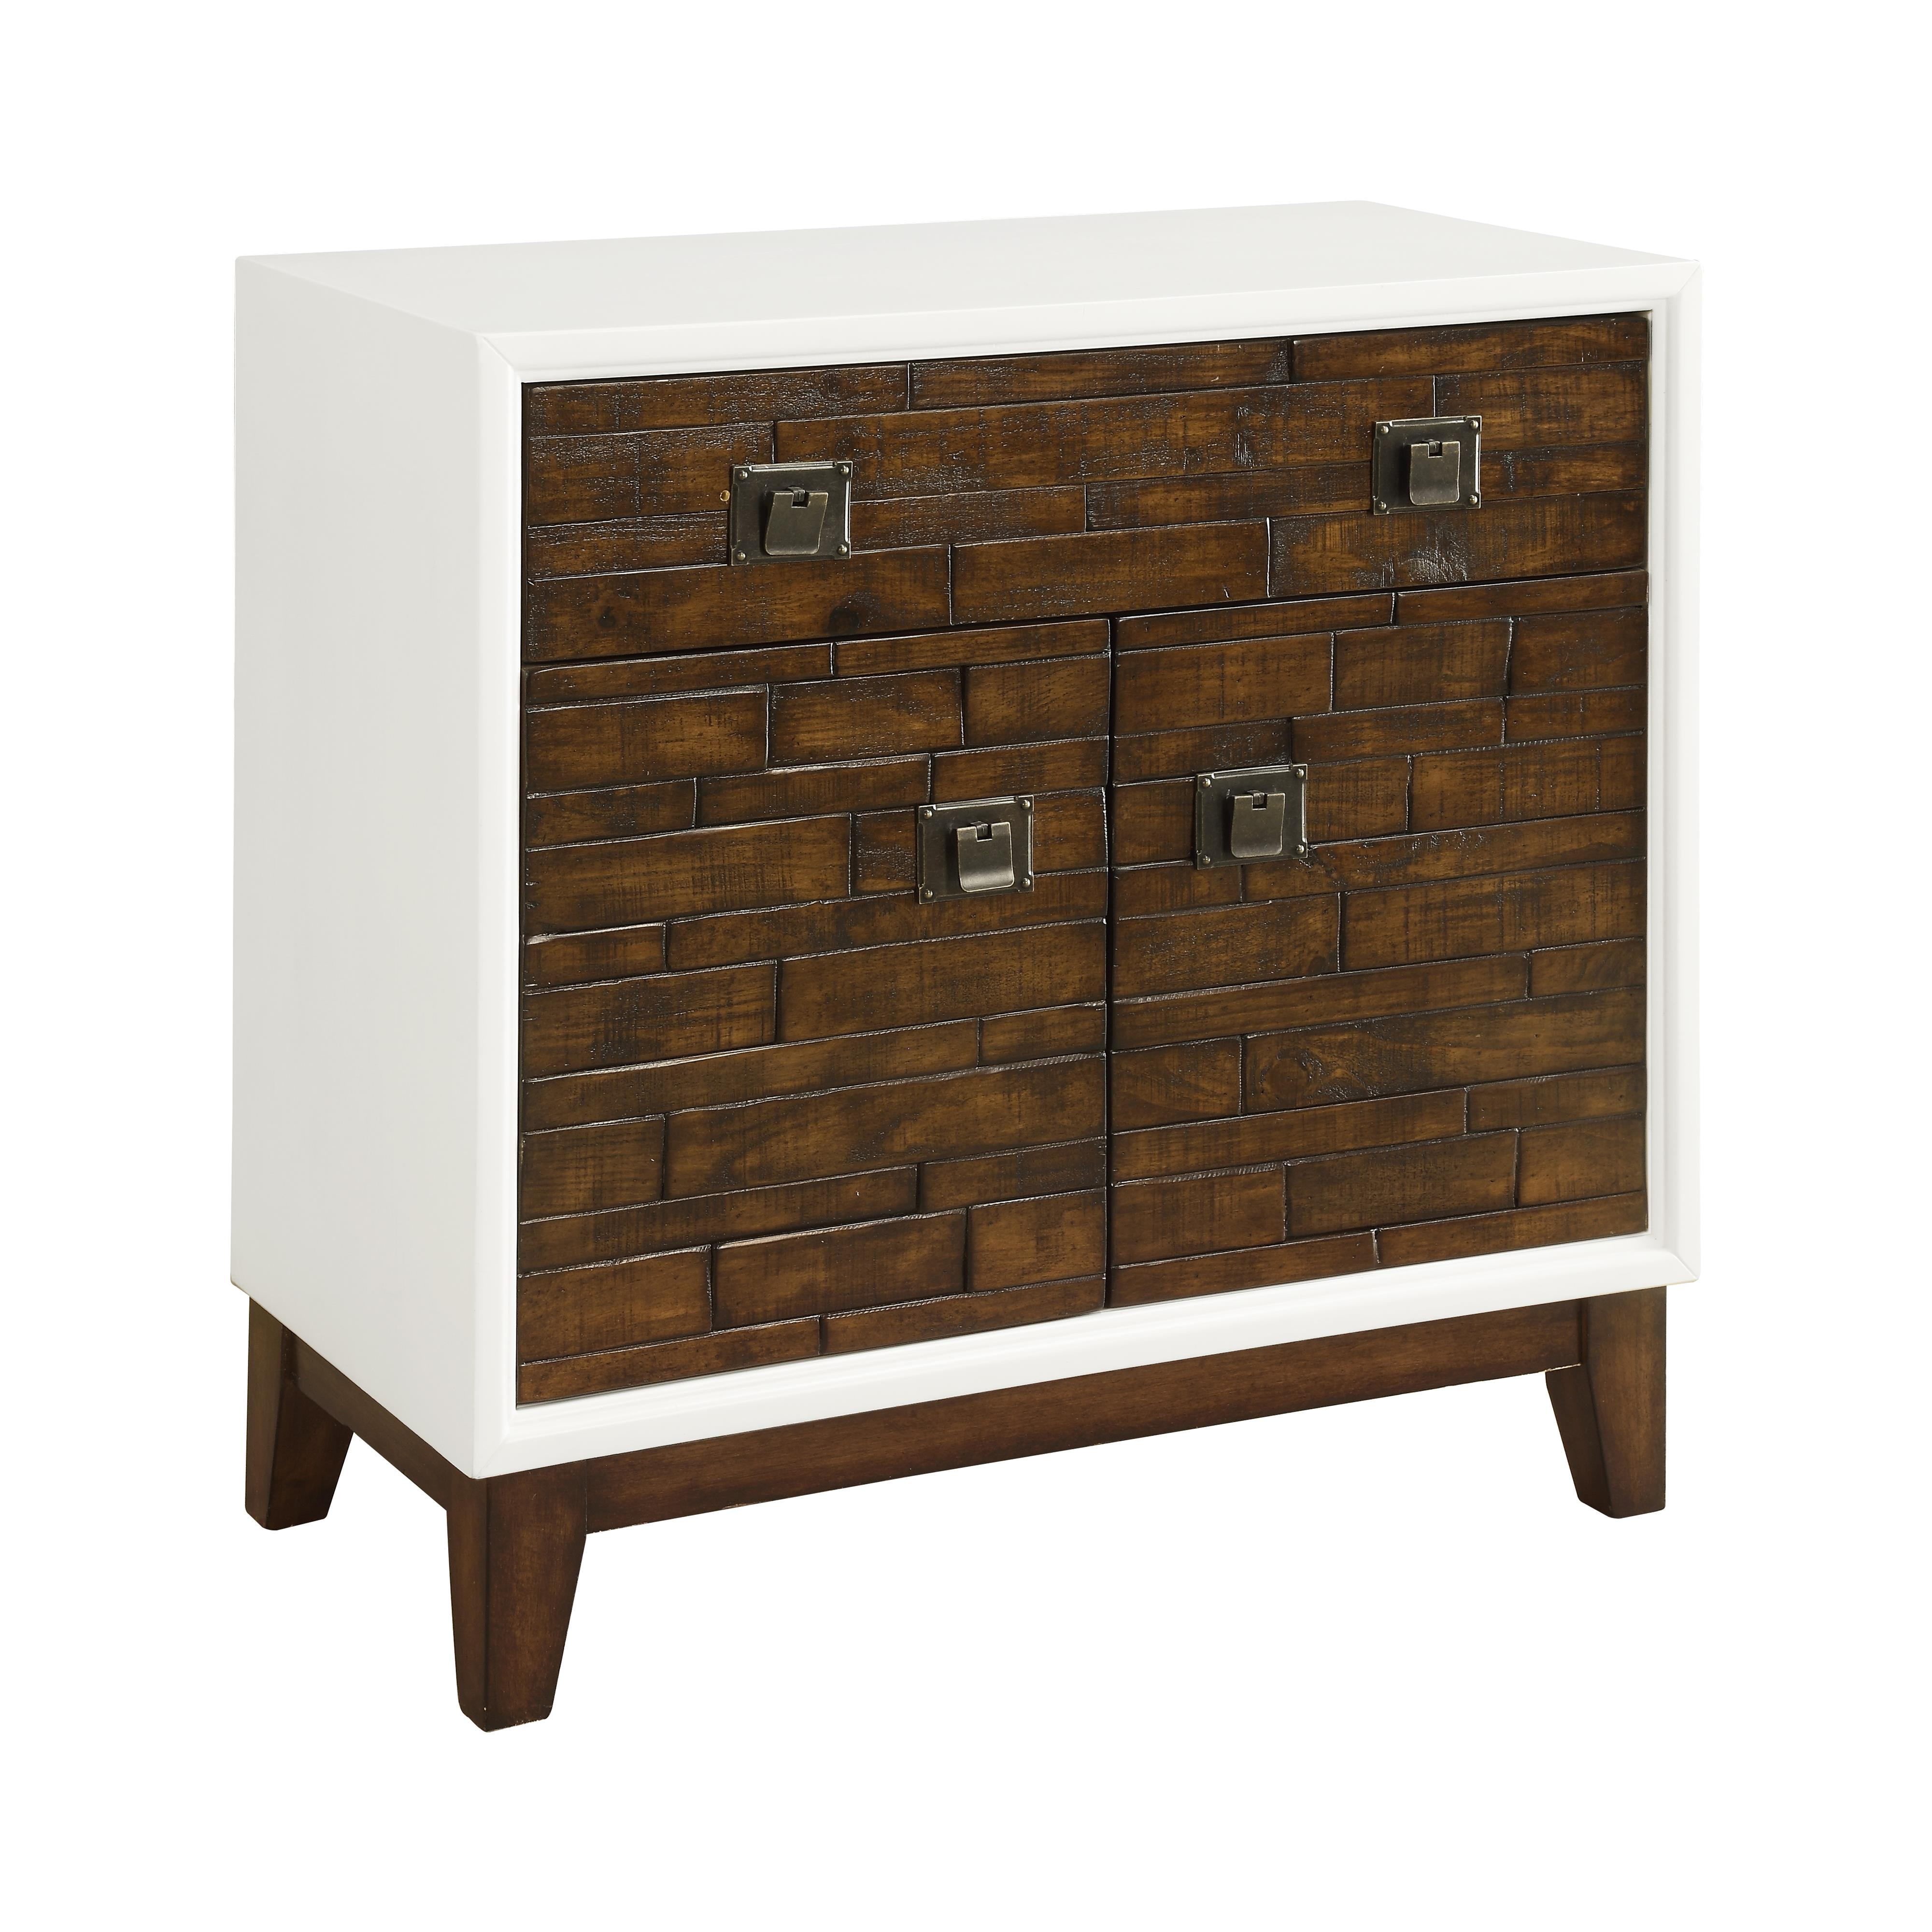 Coast to Coast Imports Coast to Coast Accents One Drawer Two Door Cabinet - Item Number: 78606